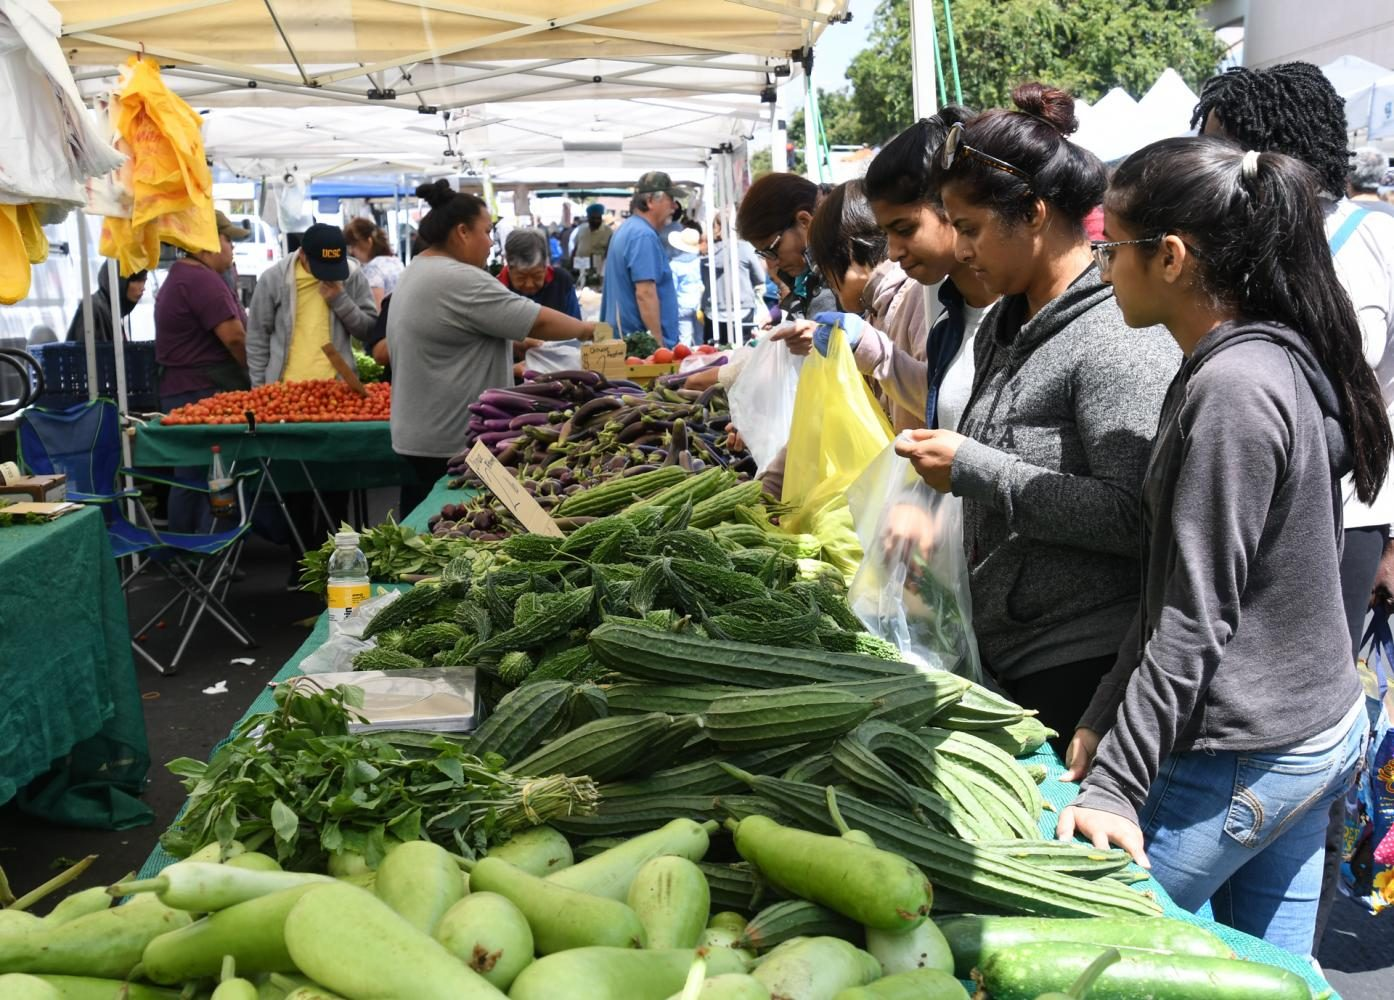 Shoppers+sift+through+fruits+and+vegetables+at+the+farmers+market+in+downtown+Hayward+on+Saturday+near+City+Hall.+The+market+has+been+an+institution+in+the+city+for+more+than+20+years+and+is+open+year+round%2C+every+Saturday+from+9+a.m.+to+1+p.m%2C+rain+or+shine.+The+market+features+more+than+35+farmers%2C+food+purveyors%2C+and+artisans+selling+locally+grown+organic+produce%2C+seafood%2C+pastured+eggs%2C+cheese%2C+nuts%2C+honey+breads%2C+baked+goods%2C+plants%2C+fresh-cut+flowers%2C+pre-packed+cold+and+hot+foods%2C+artisanal+crafts+and+jewelry.